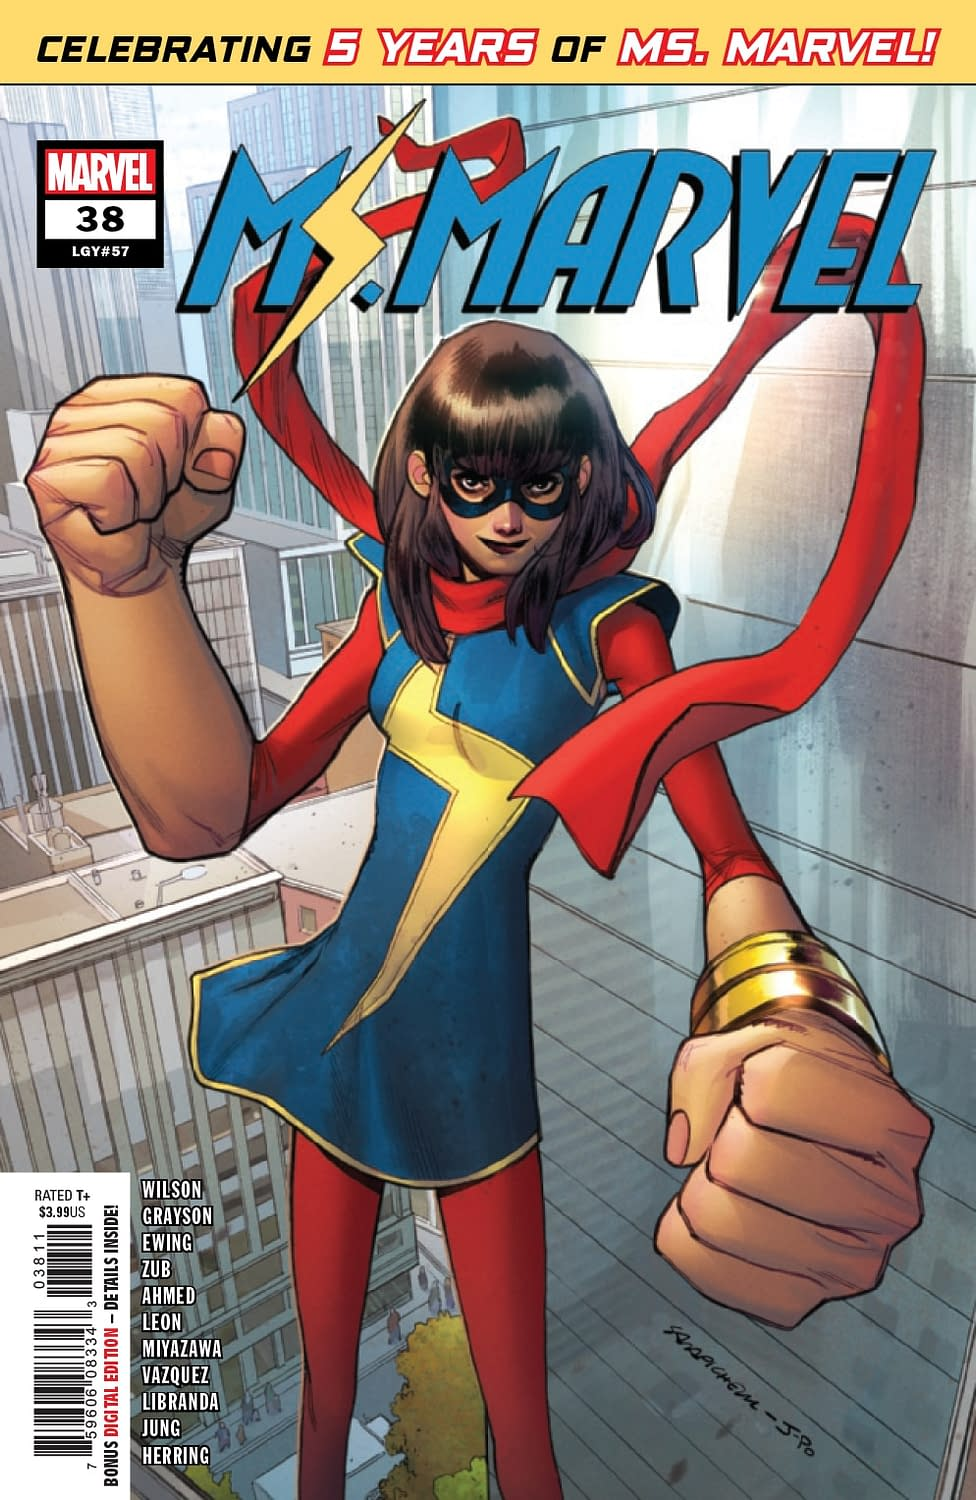 Is This Relaunch Fatigue in Next Week's Ms. Marvel Finale?